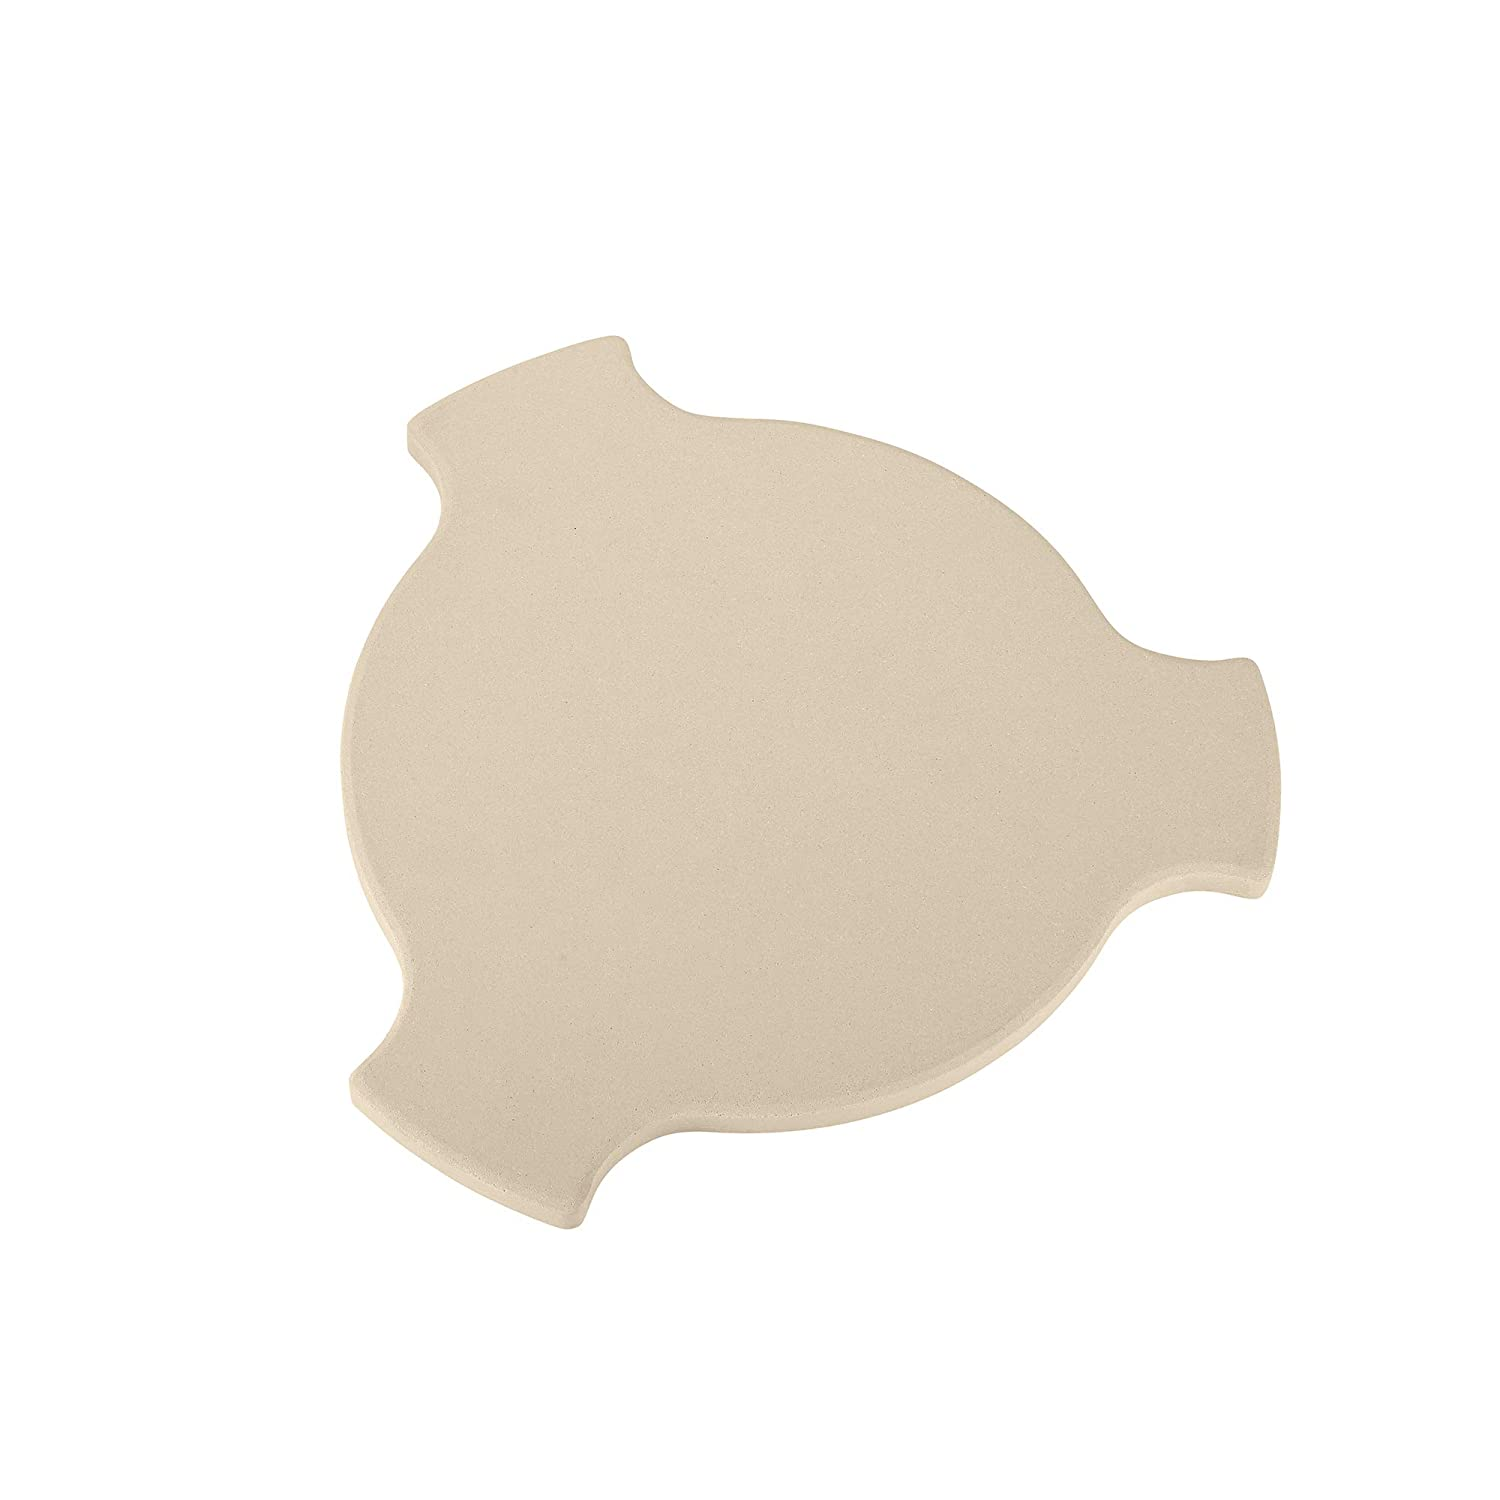 """Unicook Heat Deflector Stone 17"""", Heavy Duty Ceramic Pizza Stone, Smoking Stone, Compatible for Char-Griller 6201, Fits Char-Griller 20"""" AKORN Kamado Grill, Large Big Green Egg and Other Kamado Grills"""